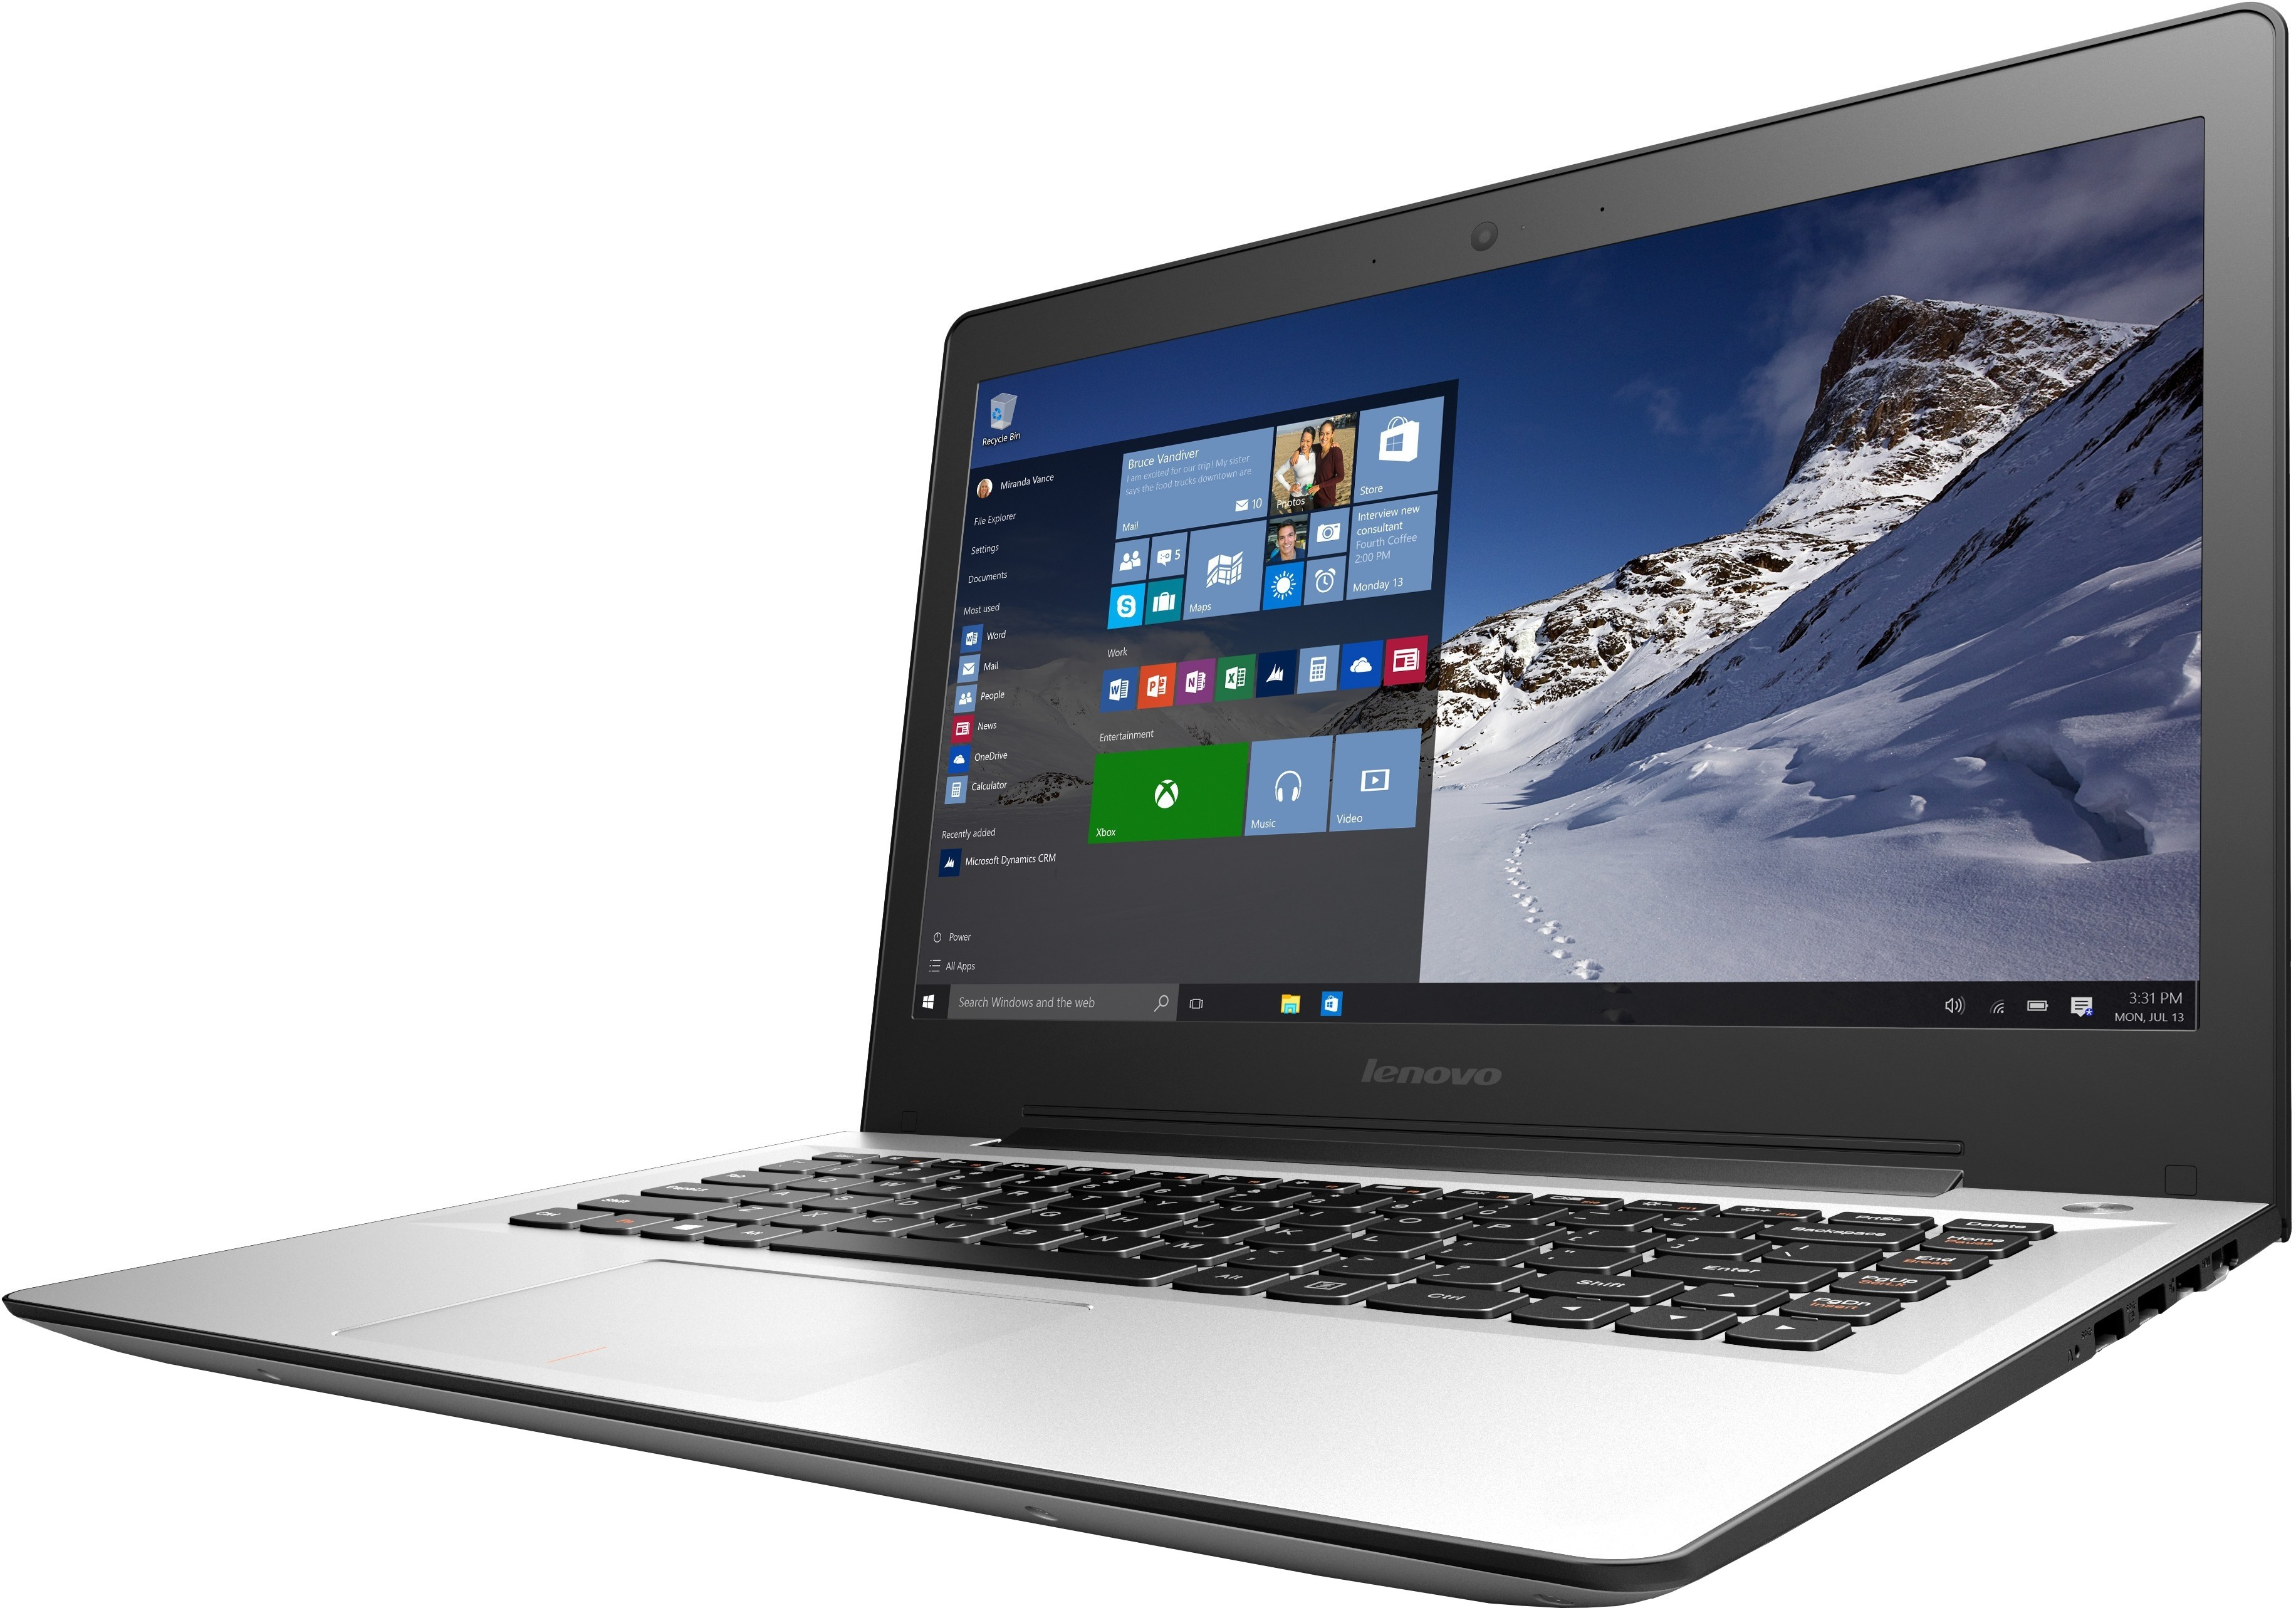 View Lenovo Ideapad 500s Intel Core i5 (6th Gen) - (4 GB/1 TB HDD/Windows 10/2 GB Graphics) 80Q30056IN 500S-14ISK Notebook Laptop